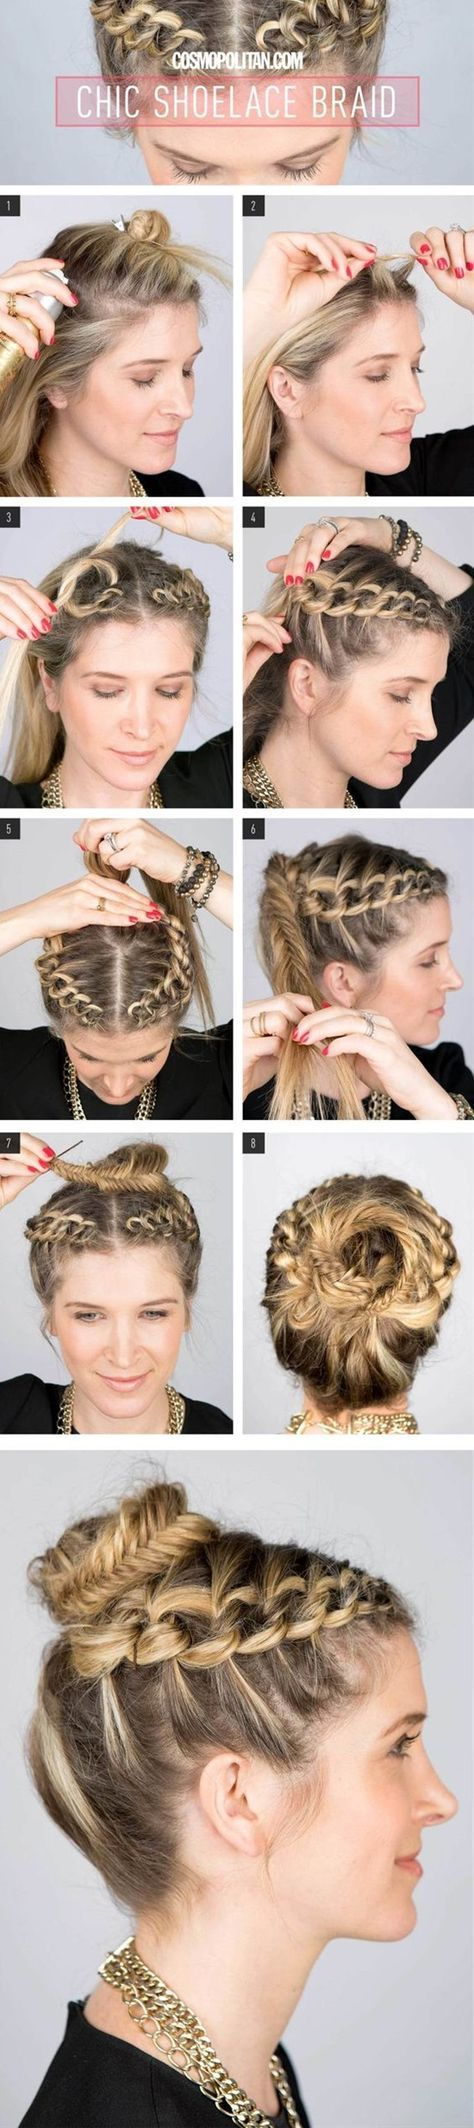 When it comes to styling hair, you simply cannot go wrong with braids. Whether your hair is long and thick or medium length and thin, whether it's summer or winter, braids are perfect for any time and situation. Need something fancy? Adorn your braid with pretty ribbons or hair bands. Looking for a casual yet feminine and elegant look for work? Just a simple braid will do. Truly, braids are incredibly versatile, practical and a little boring. There are just so many times you can try a braid.